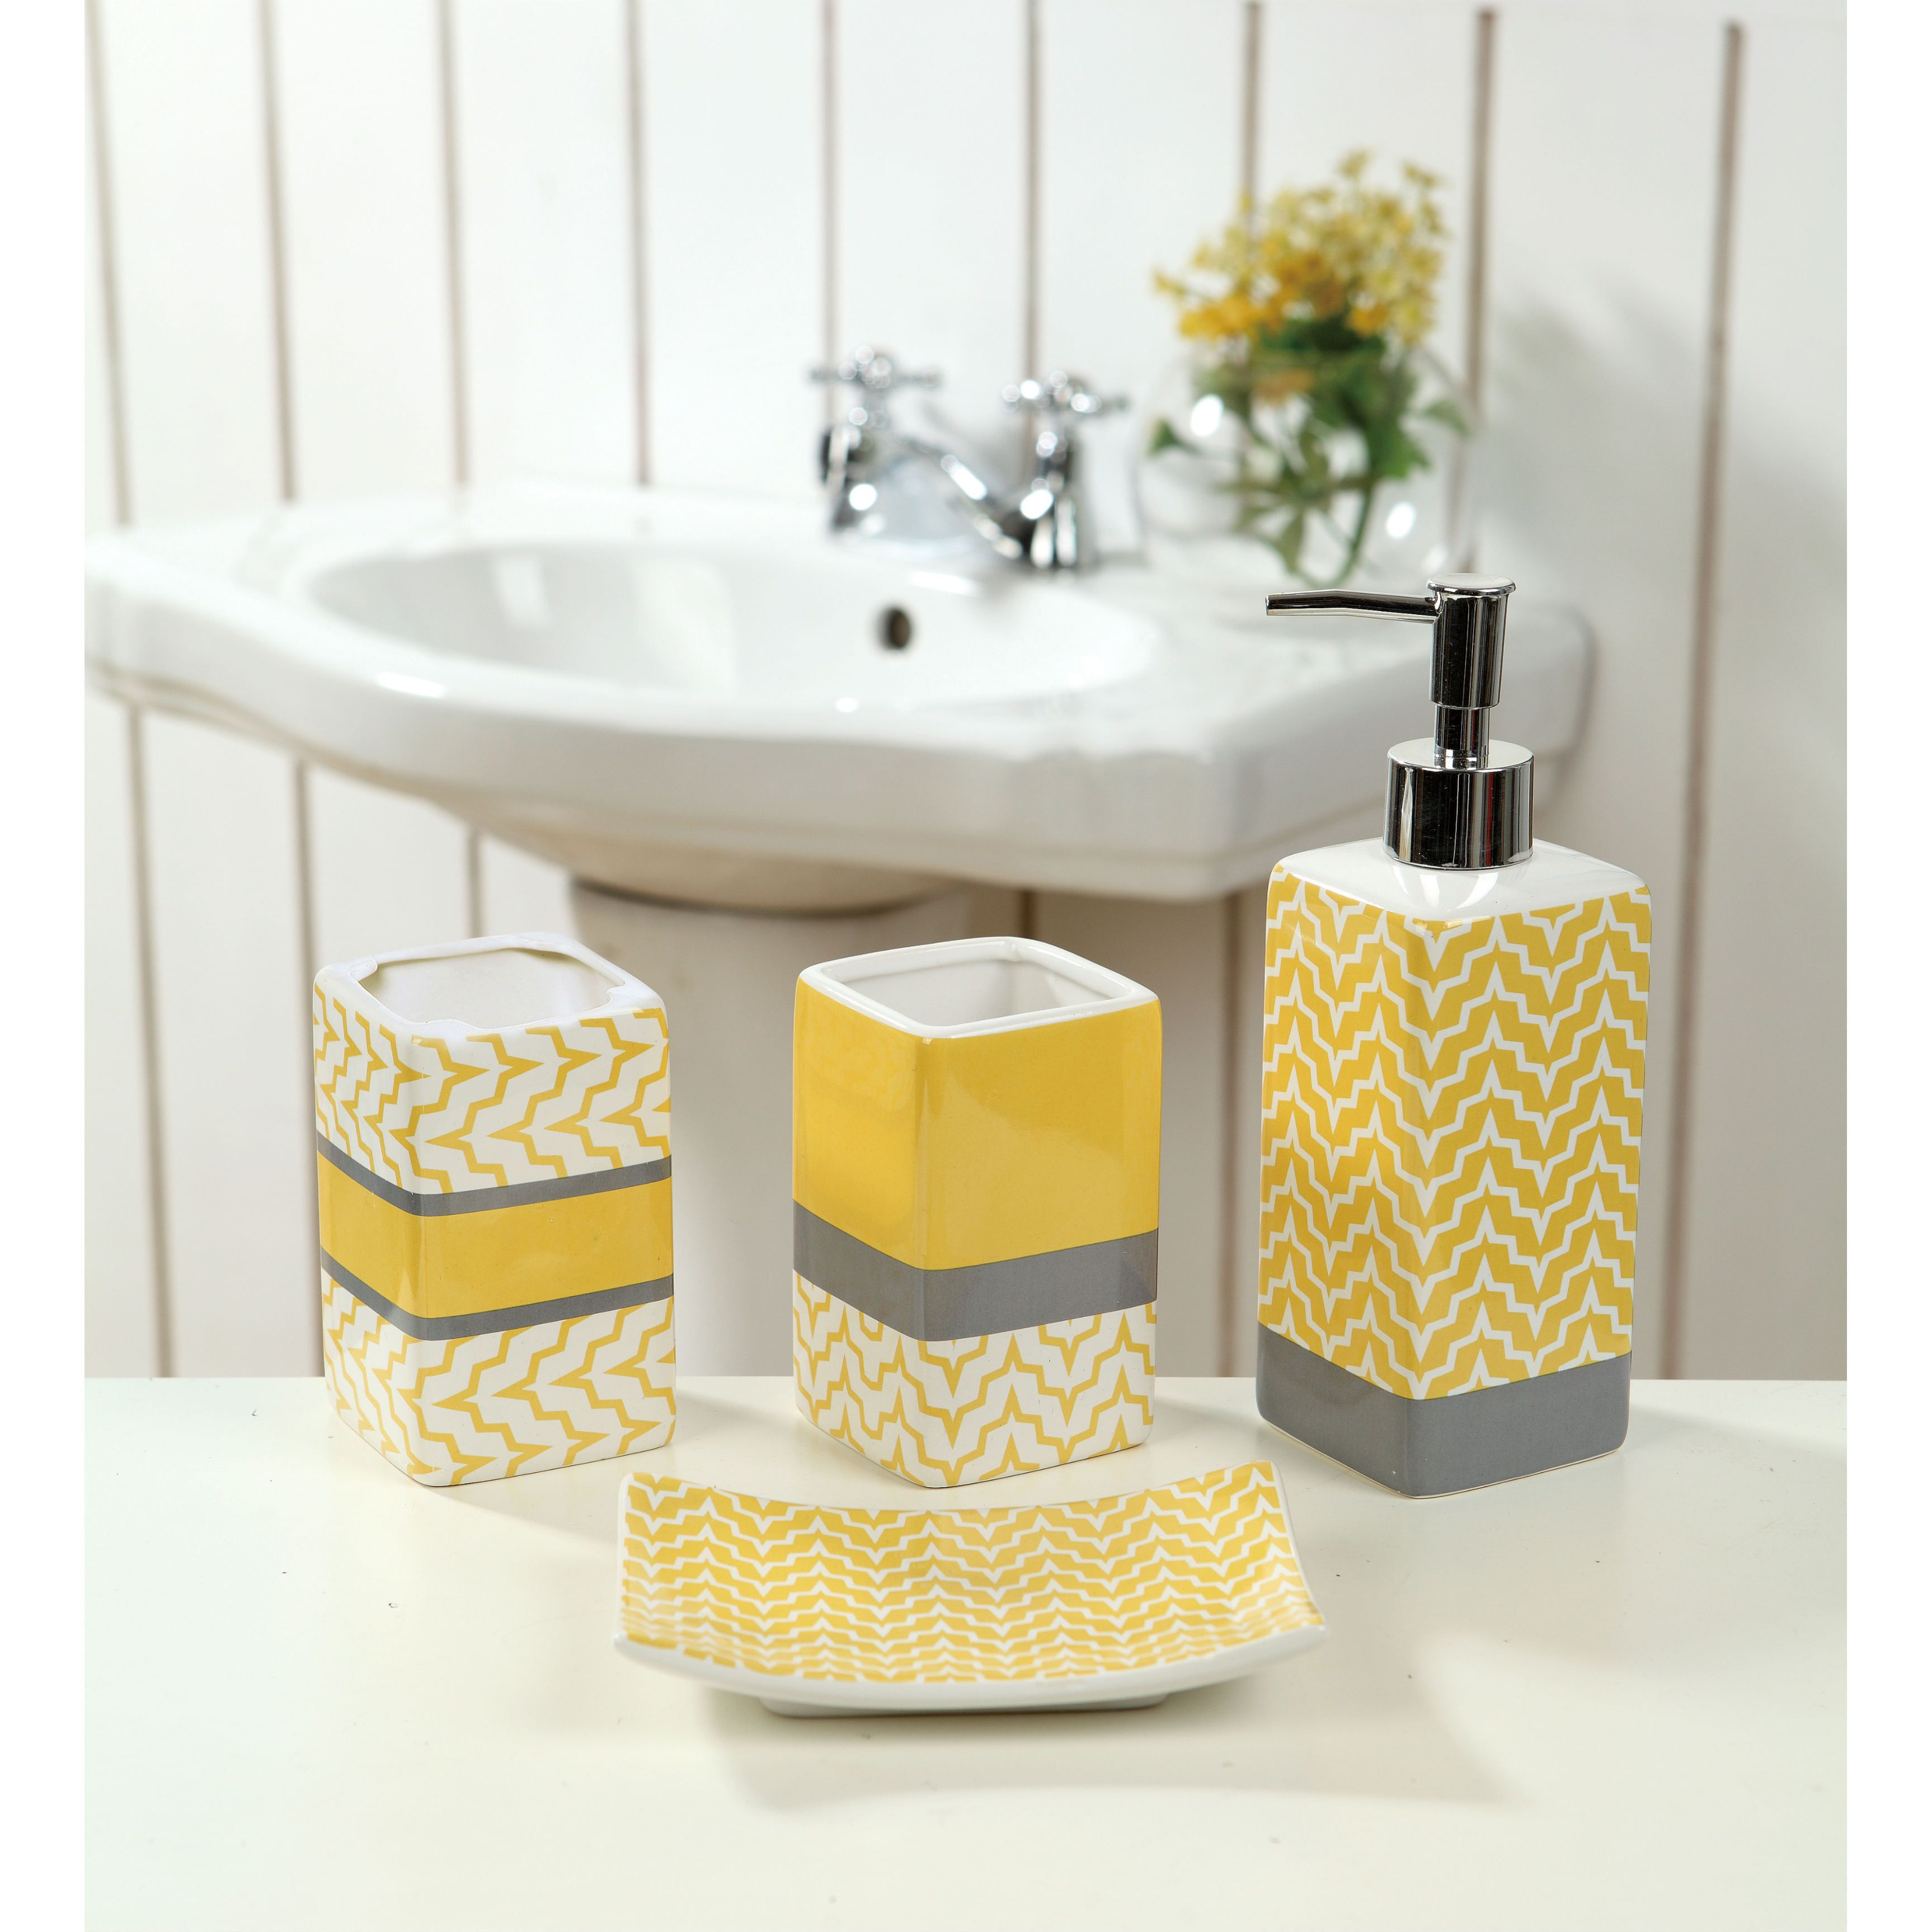 This ceramic yellow chevron bath set is sure to add a